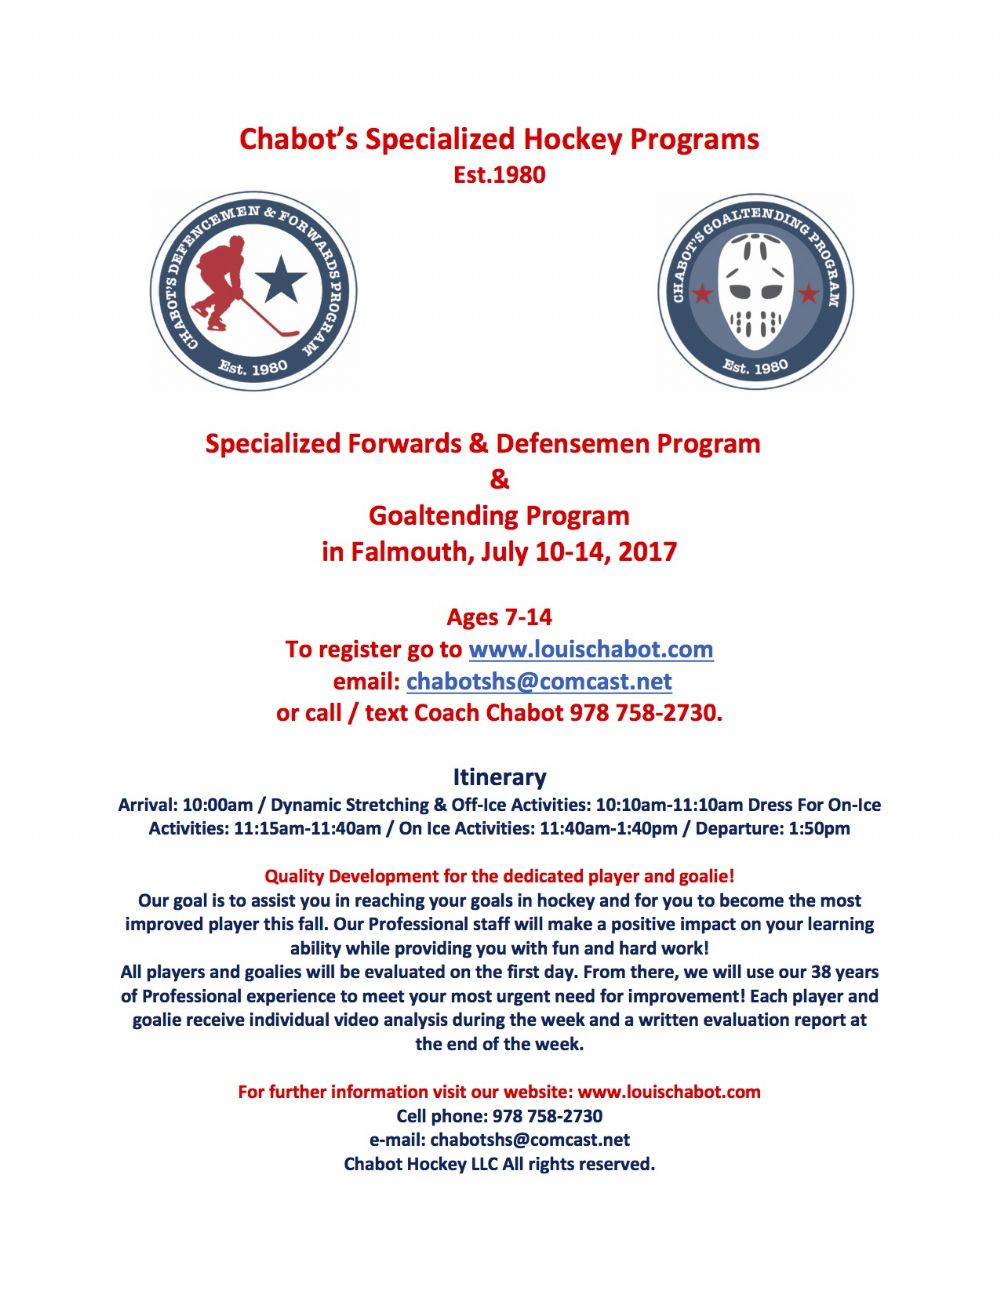 Cape Cod Canal Youth Hockey